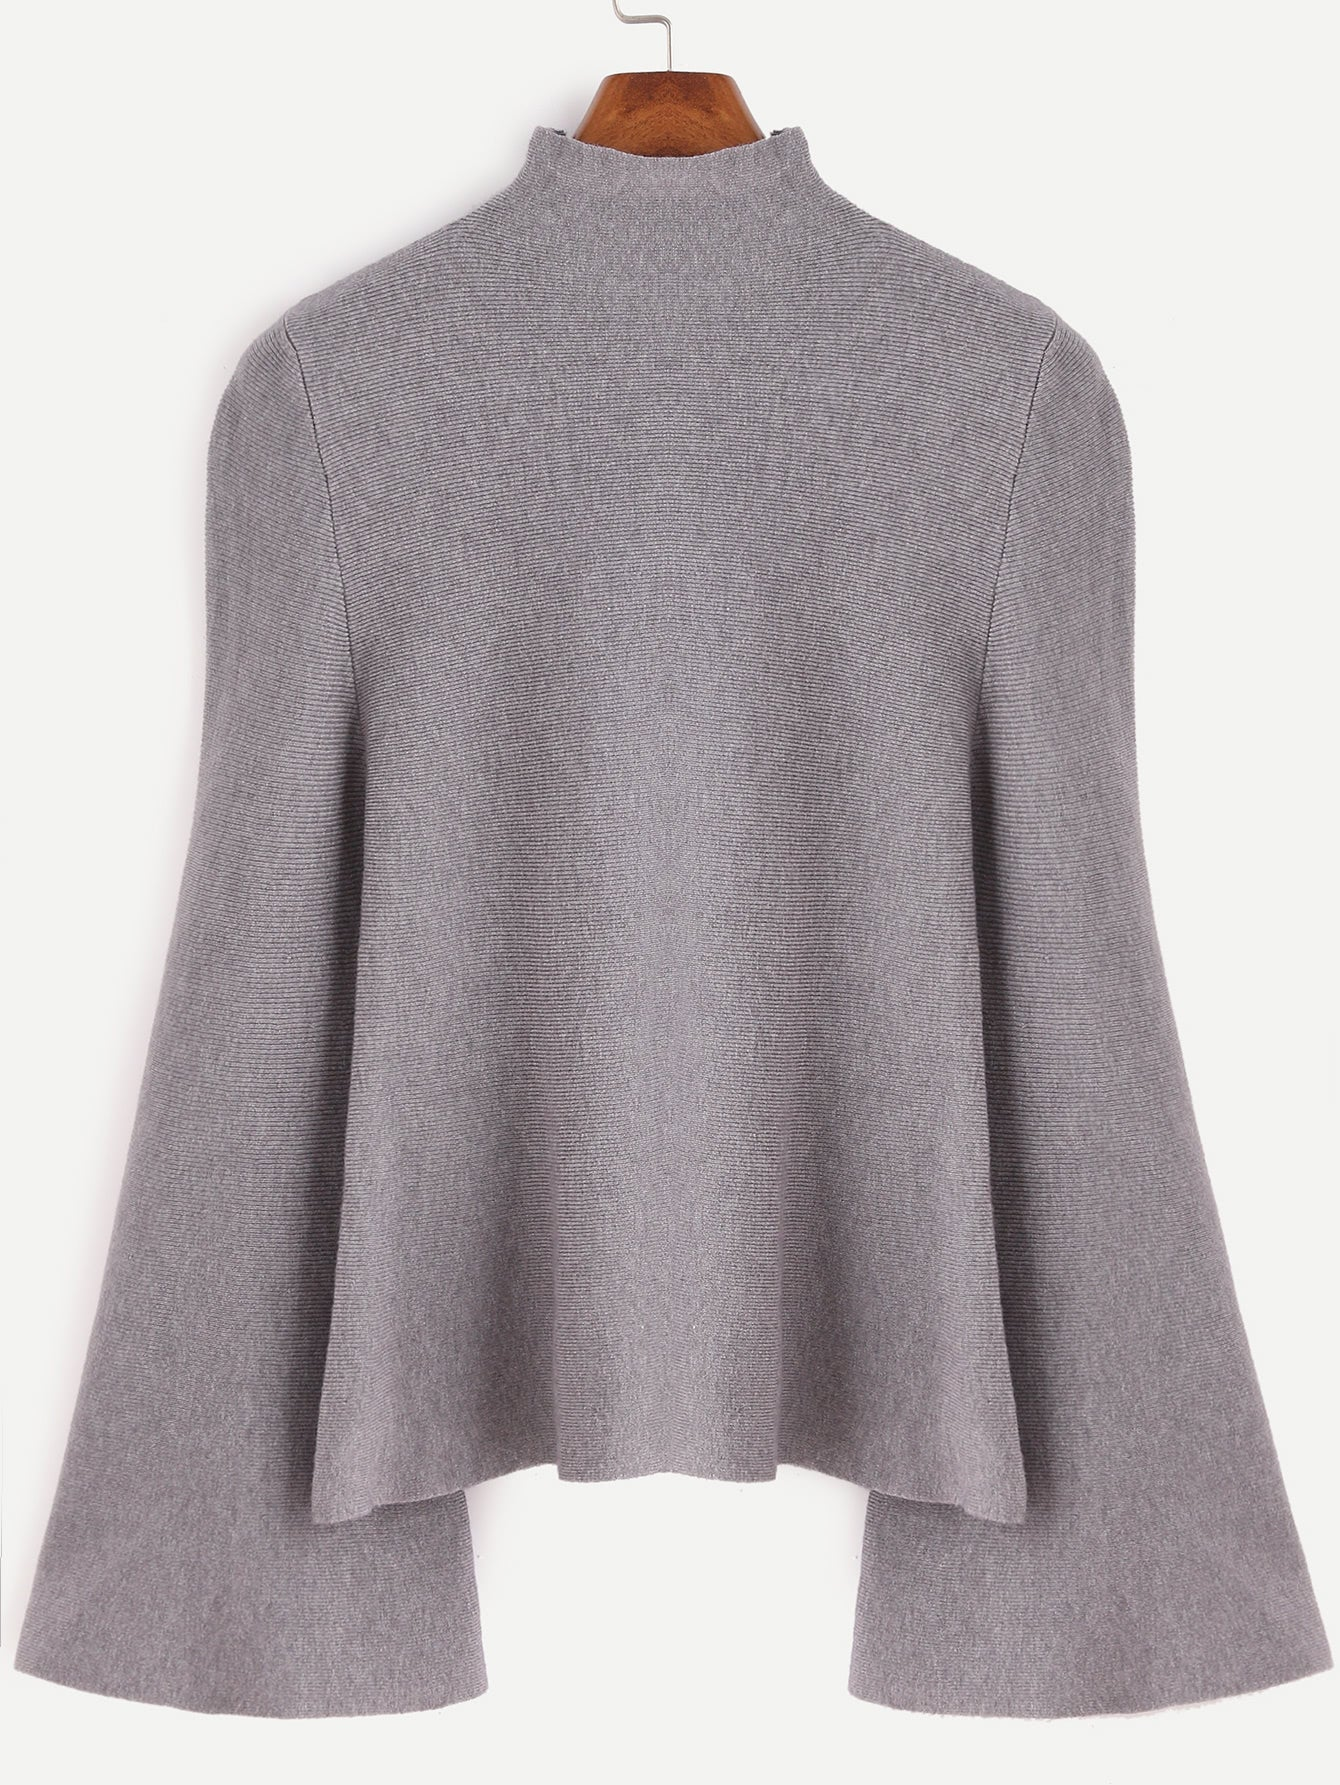 Where It's At Swing Sweater - Grey